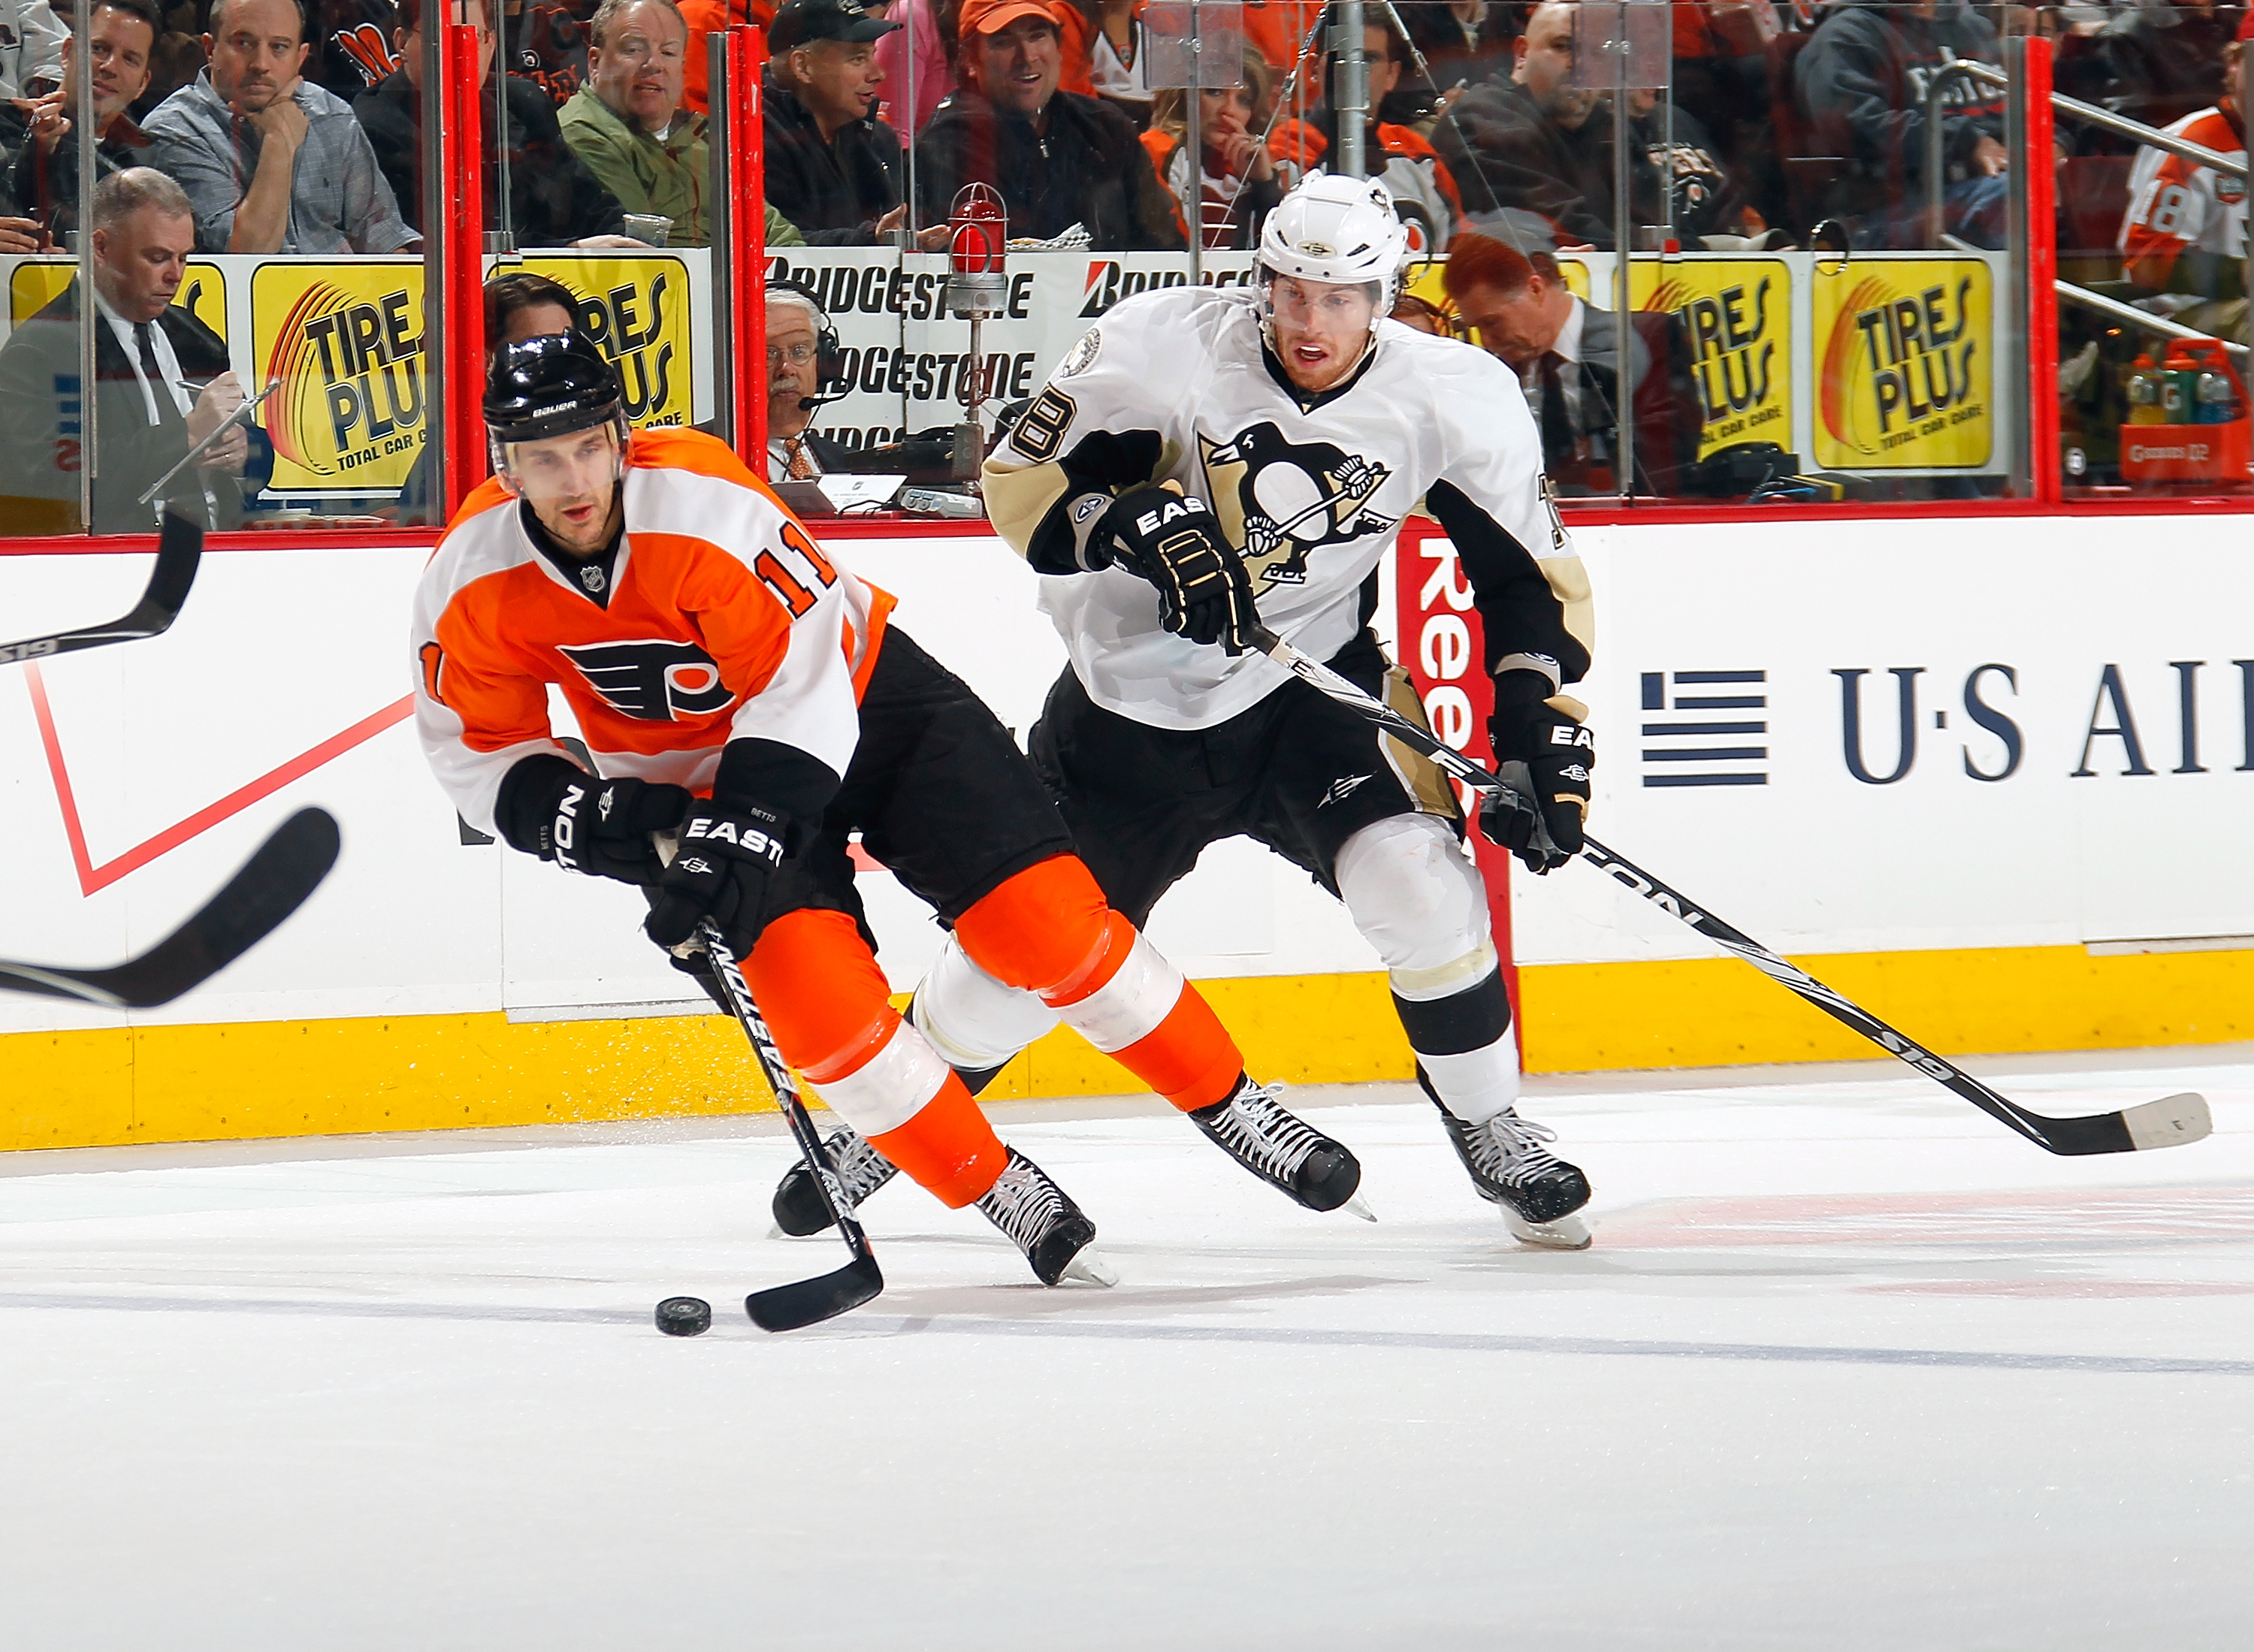 PHILADELPHIA, PA - MARCH 24:  James Neal #18 of the Pittsburgh Penguins and Blair Betts #11 of the Philadelphia Flyers skate for the puck during a game on March 24, 2011 at the Wells Fargo Center in Philadelphia, Pennsylvania.  (Photo by Lou Capozzola/Get